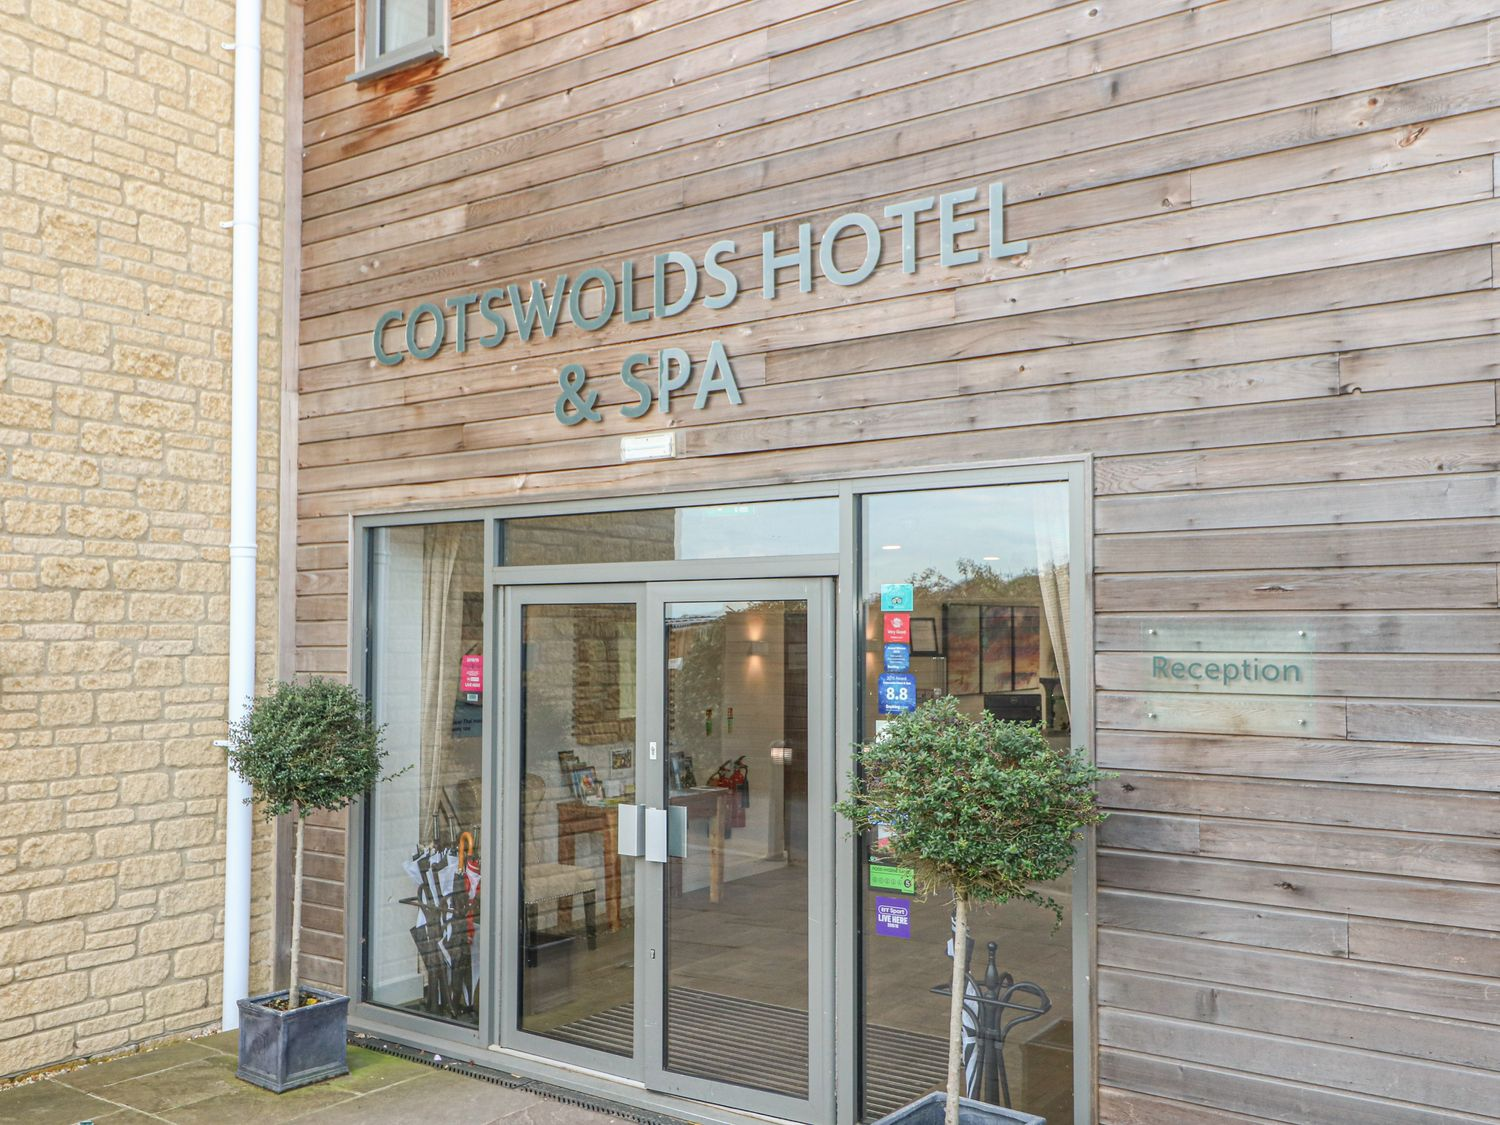 Cotswold Club Apartment (2 Bedroom Sleeps 4) - Cotswolds - 1040156 - photo 1